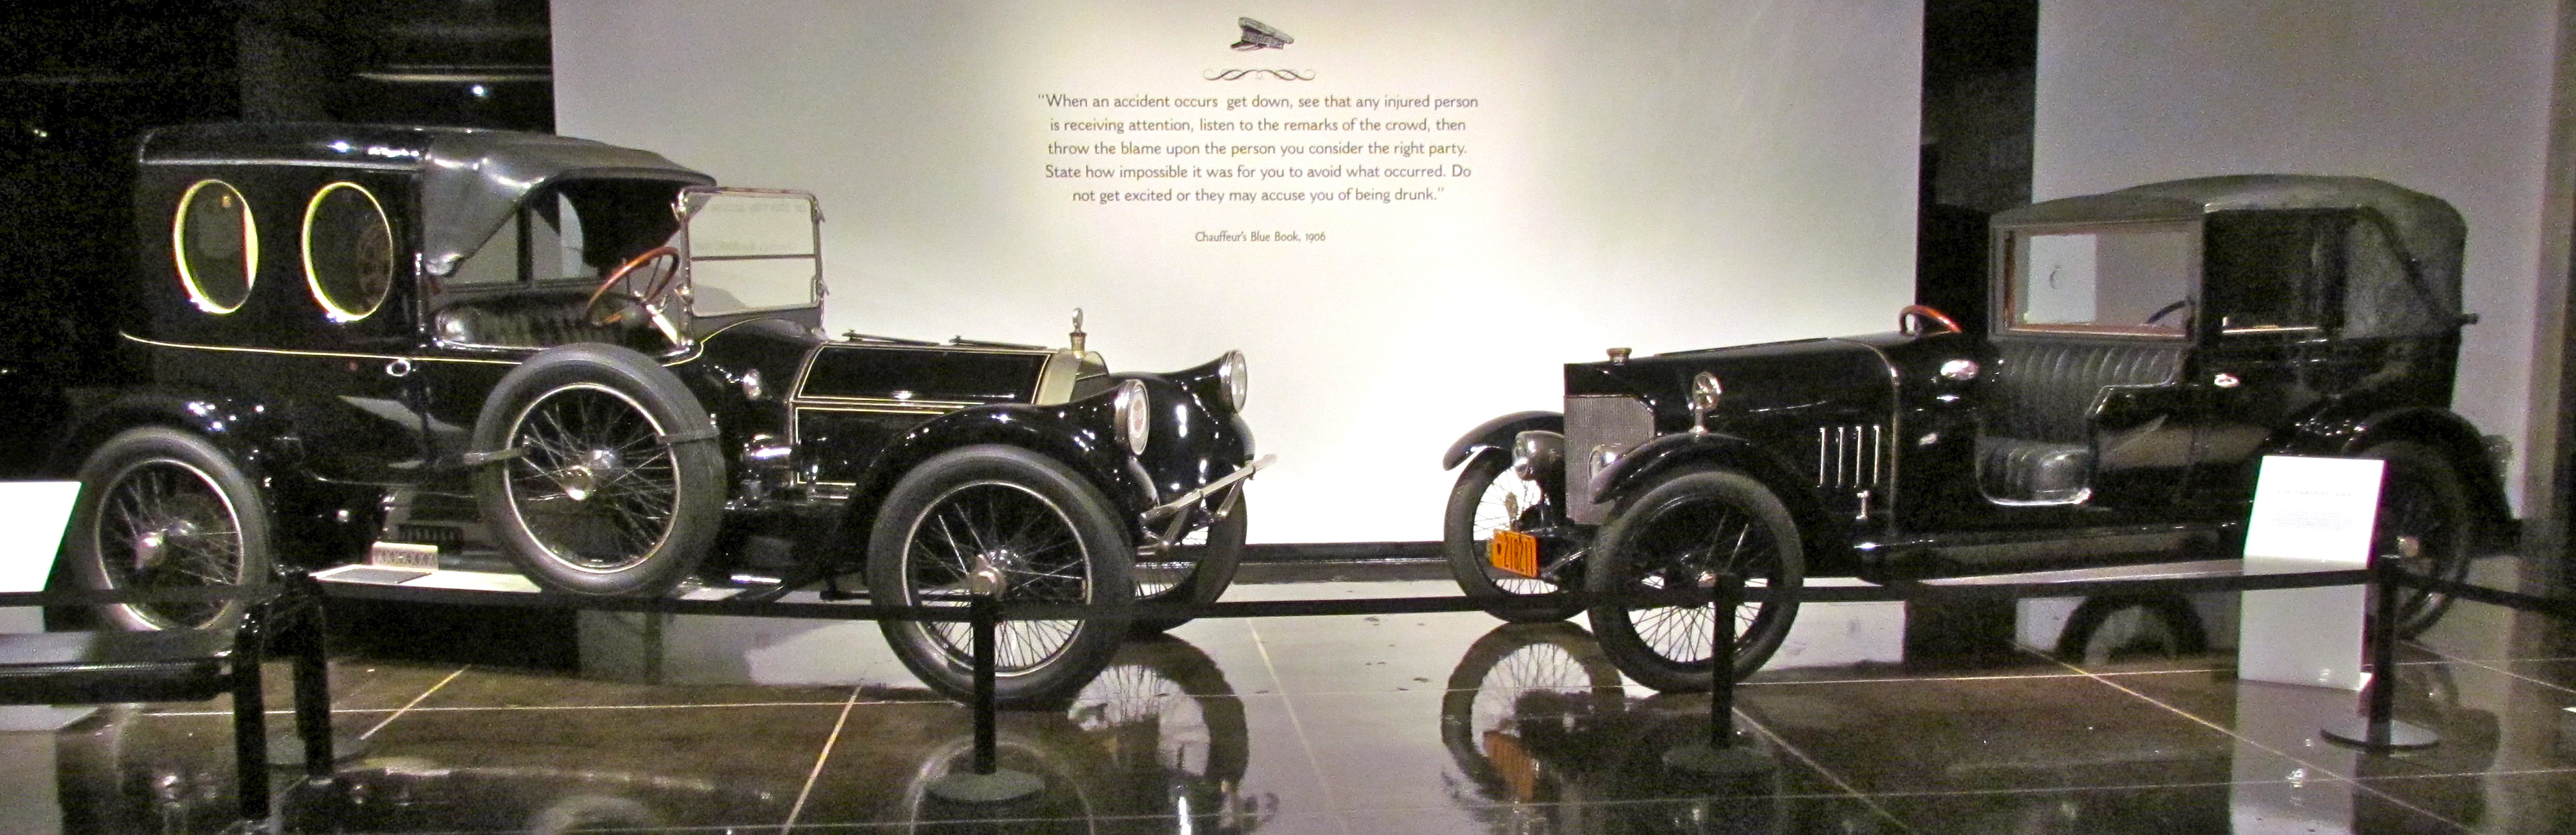 Town Cars at the Petersen museum - ClassicCars.com Journal